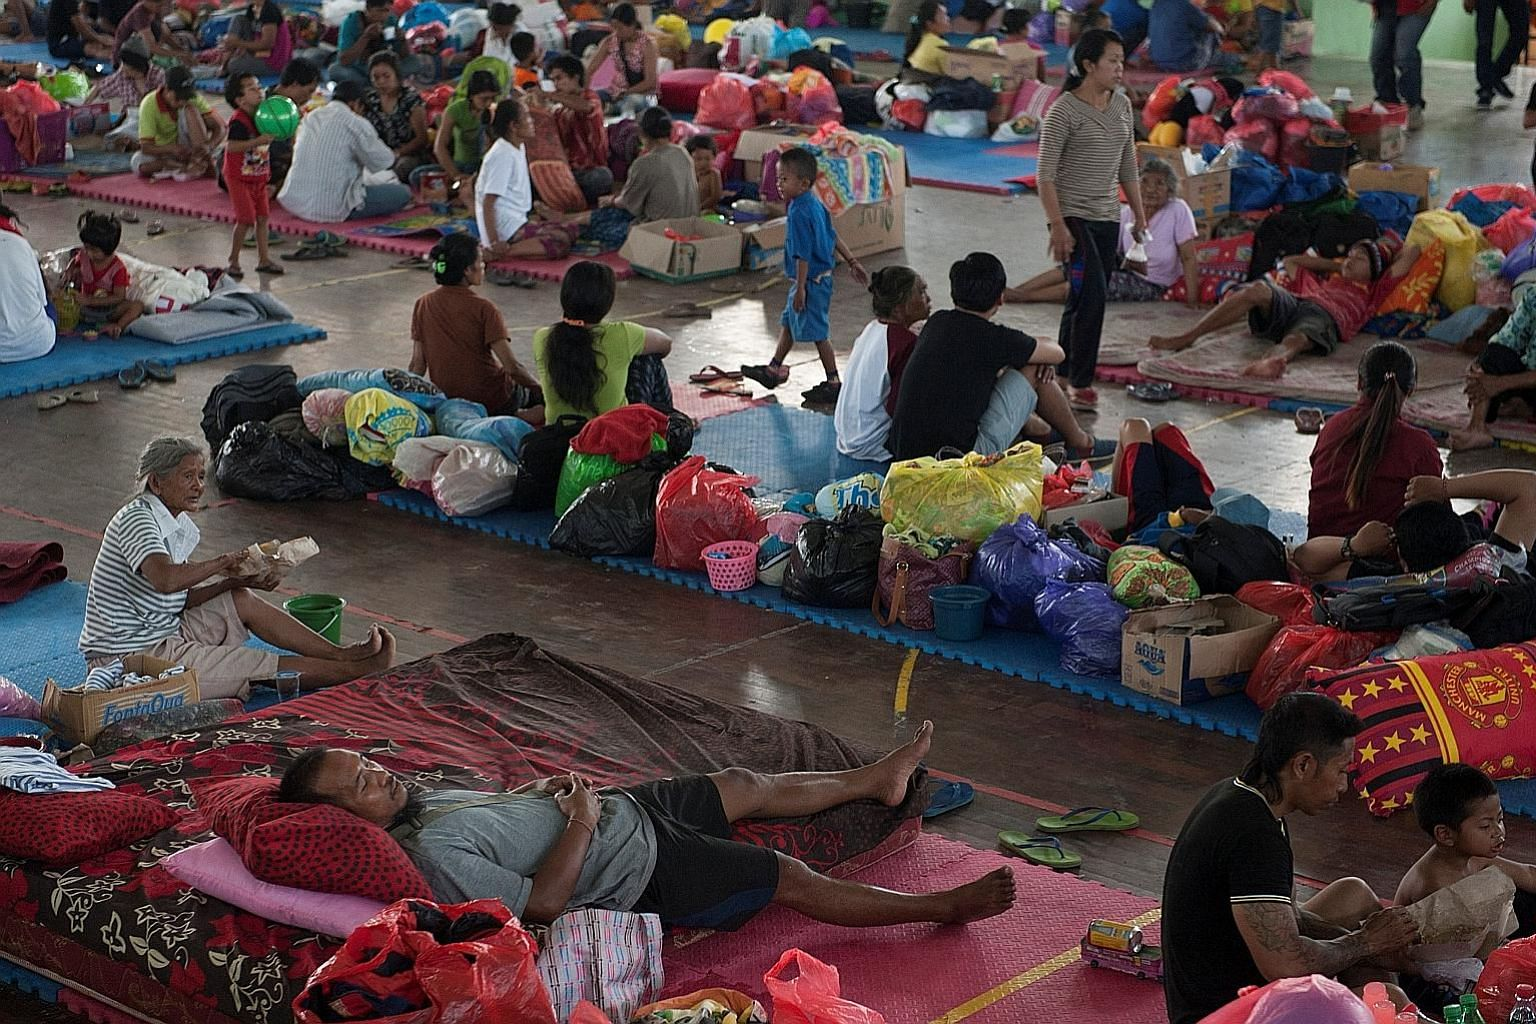 Balinese taking refuge at a temporary evacuation centre yesterday as Mount Agung continued to send out signals of imminent eruption. More than 120,000 people have fled to safety, and officials have warned people to stay at least 9km away from the vol